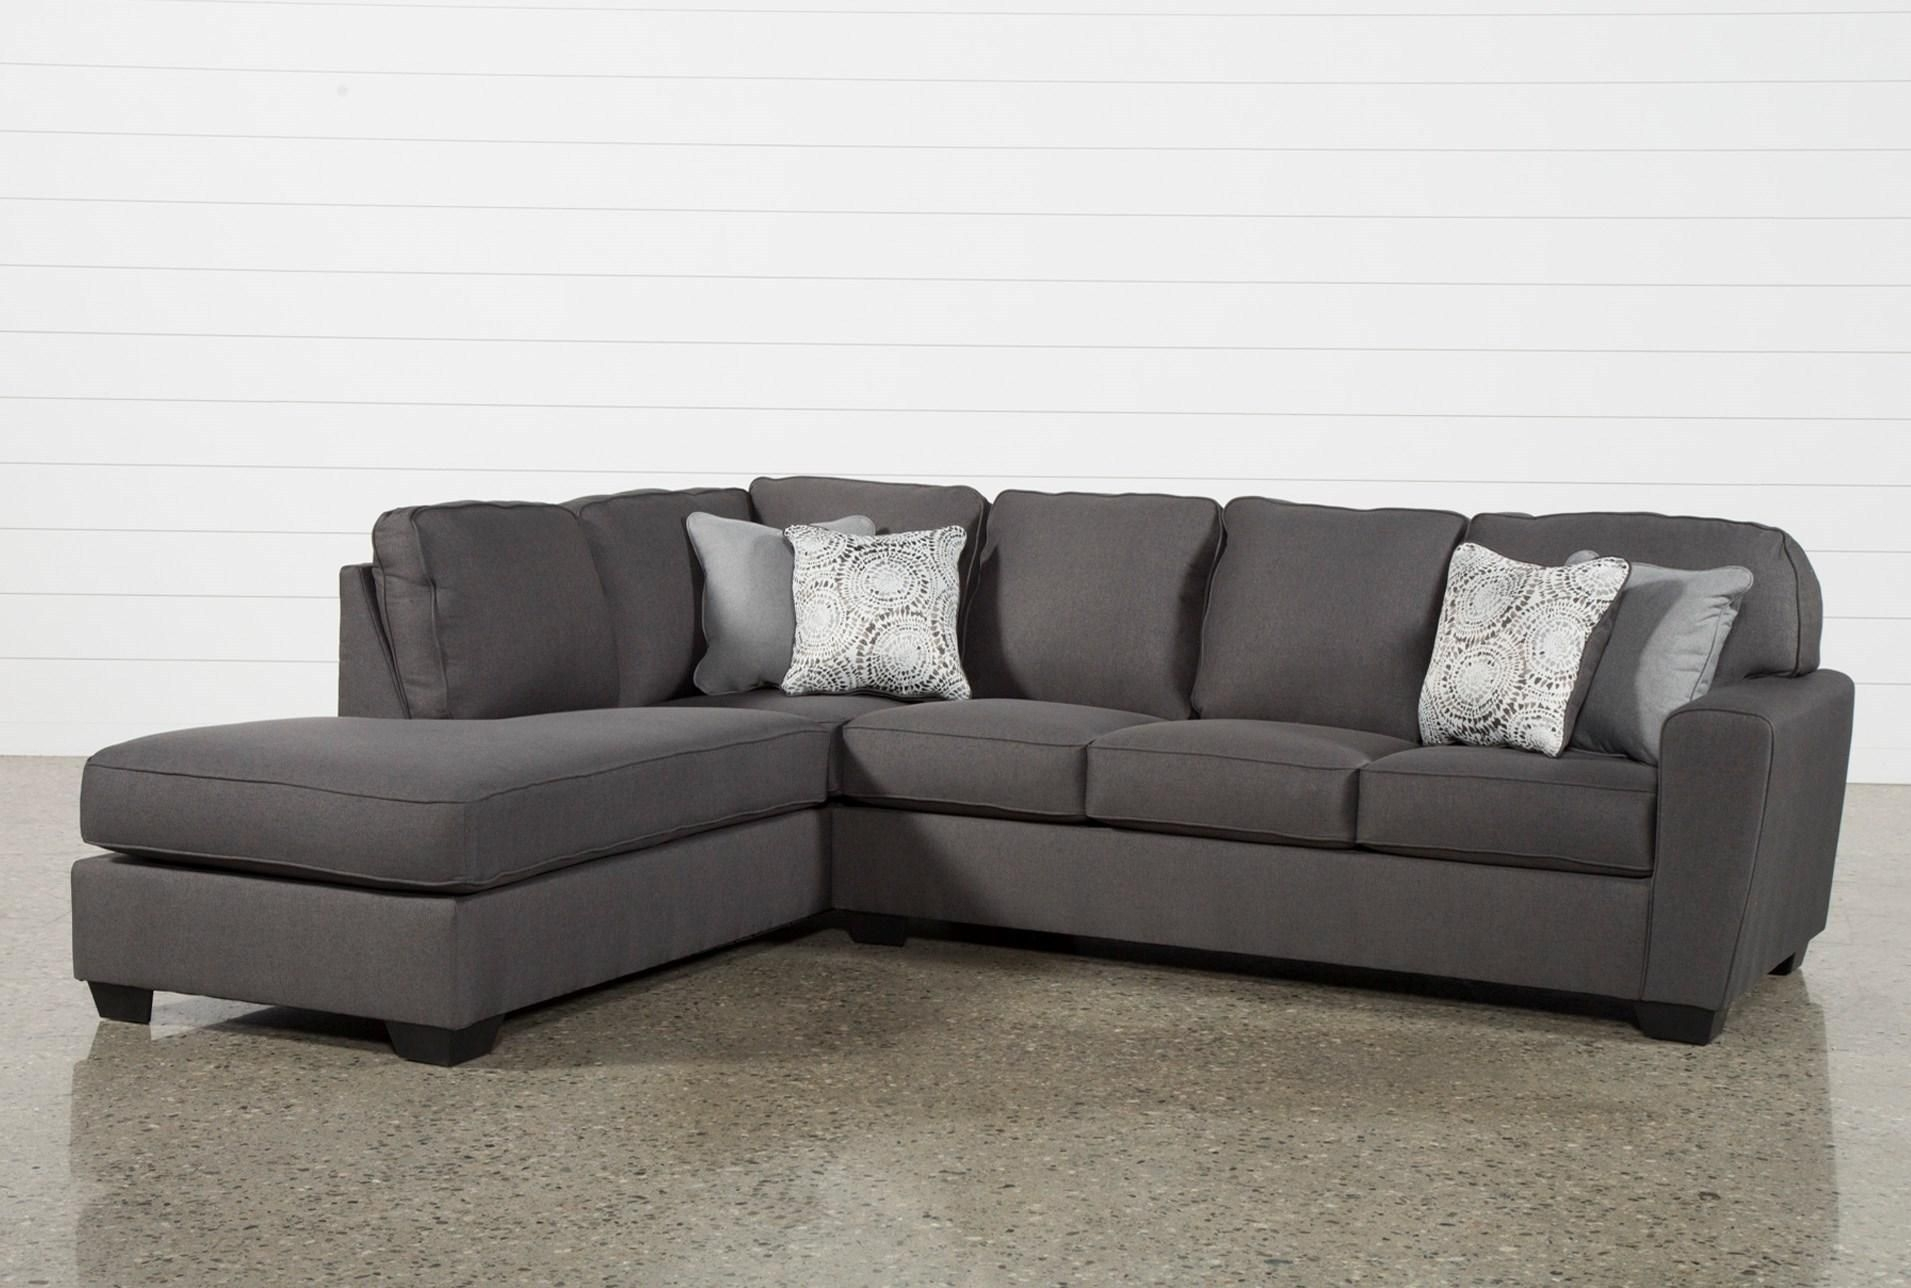 Mcdade Graphite 2 Piece Sectional W/laf Chaise | Graphite, Living with regard to Kerri 2 Piece Sectionals With Raf Chaise (Image 27 of 30)